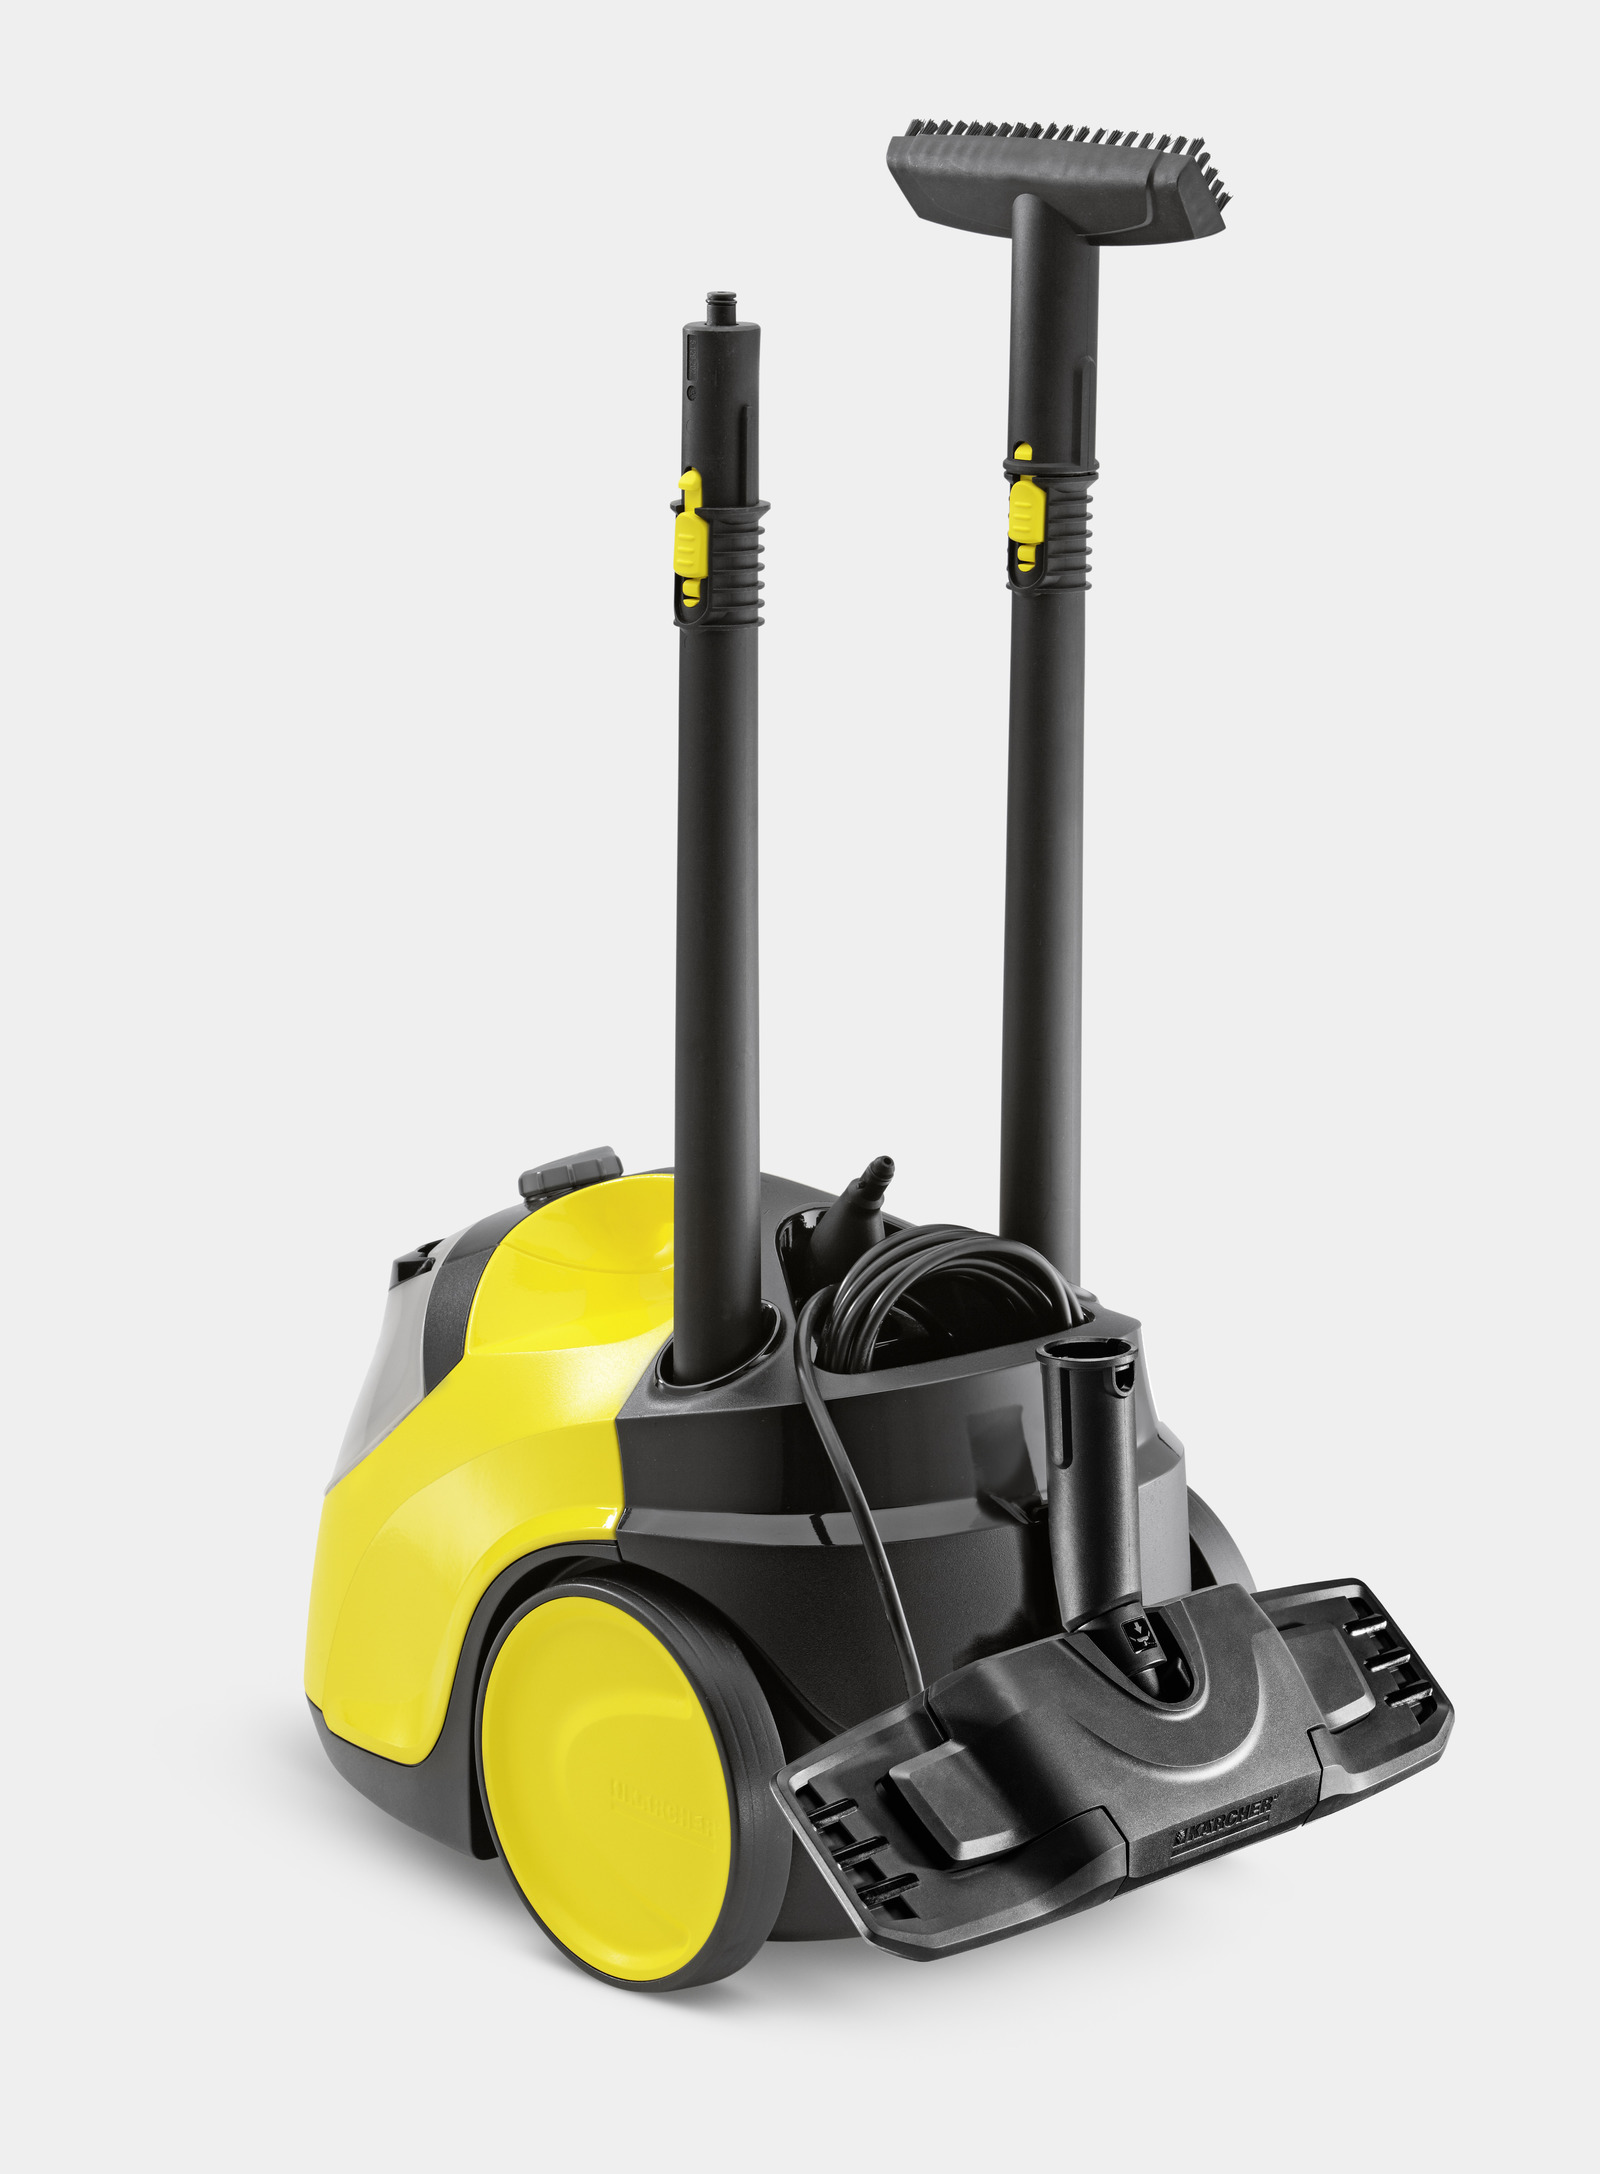 portable steam cleaner sc 5 karcher australia. Black Bedroom Furniture Sets. Home Design Ideas